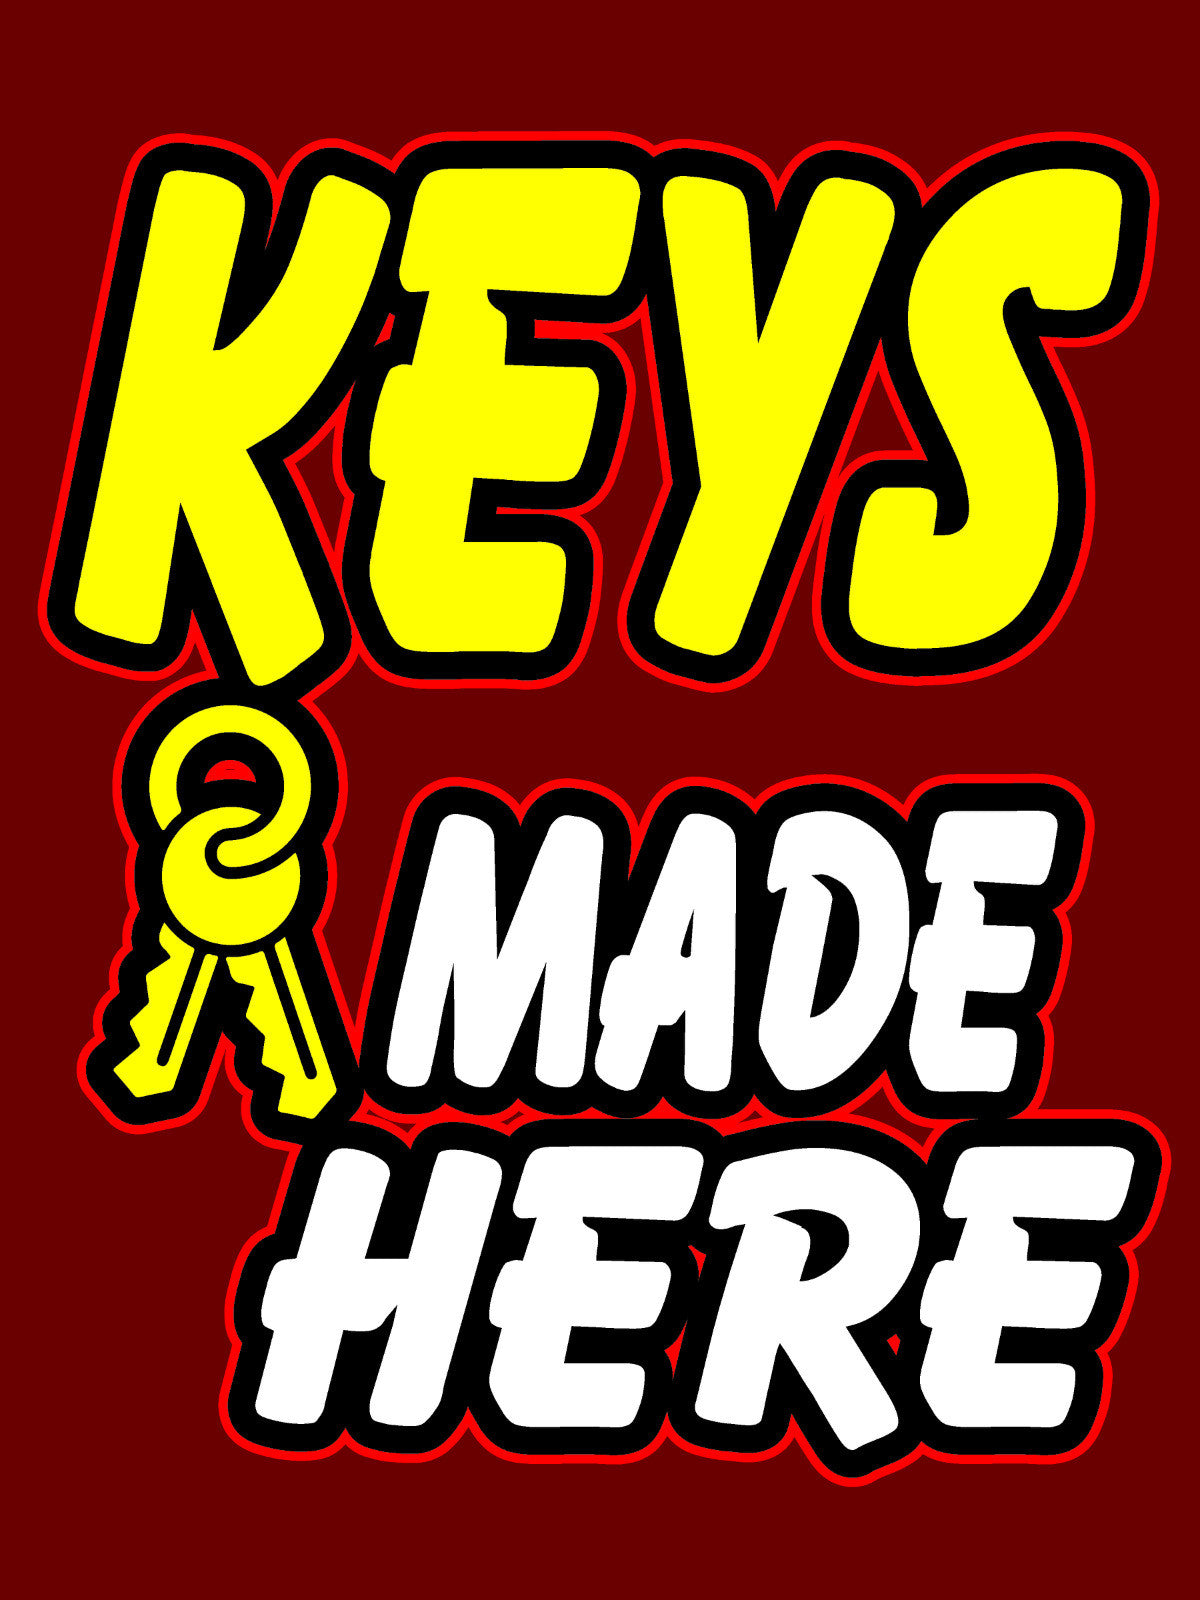 Where To Get Keys Made >> Keys Made Here Business Retail Display Sign 18 W X 24 H Full Color